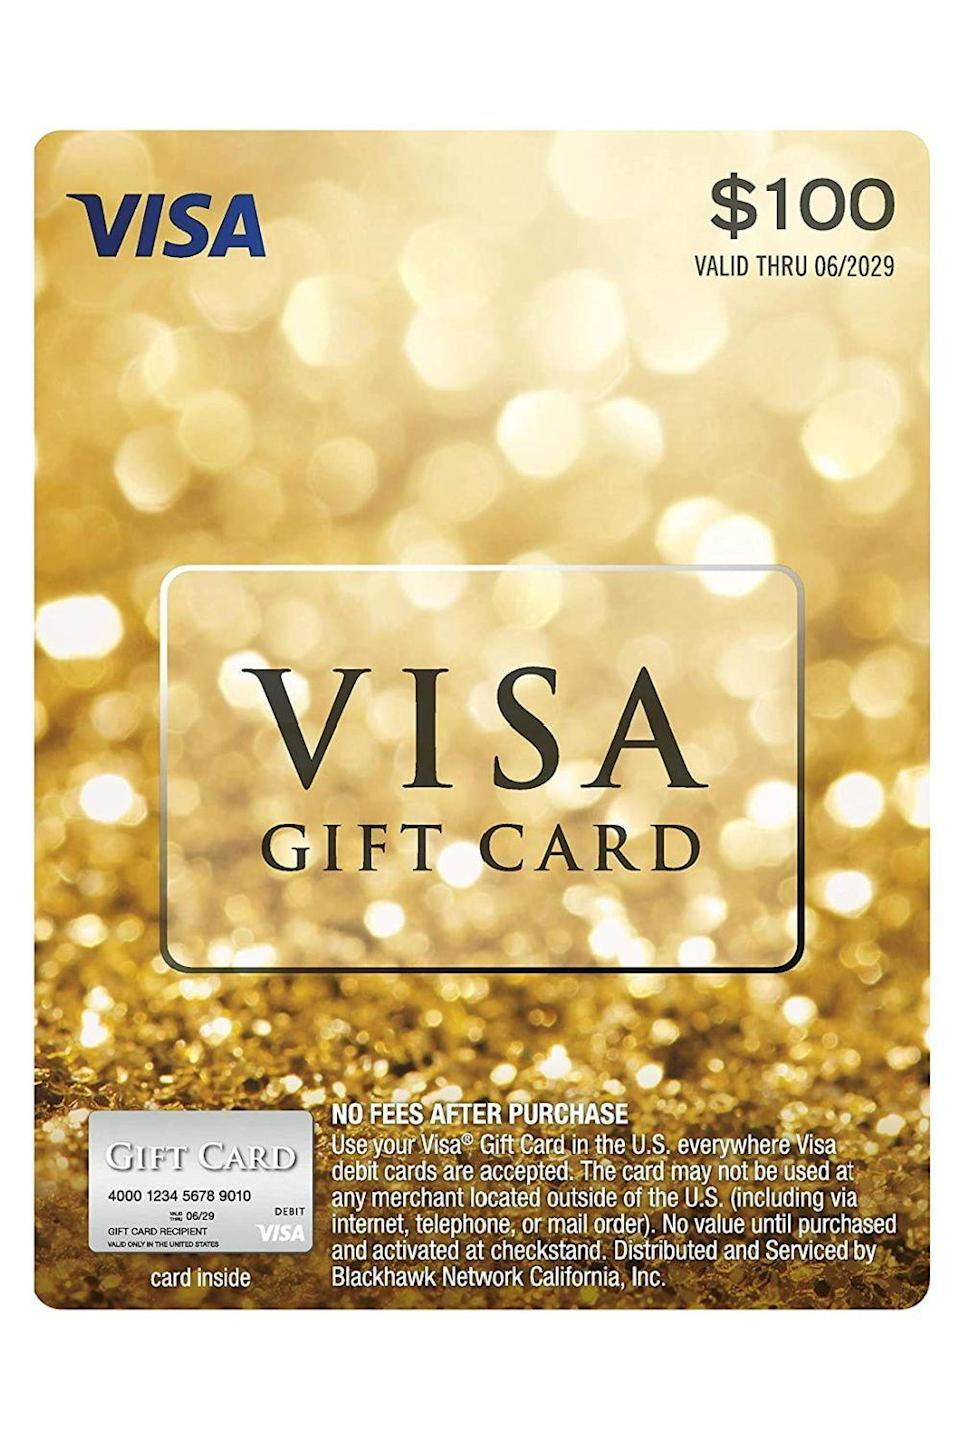 """<p><strong>Visa</strong></p><p>amazon.com</p><p><a href=""""https://www.amazon.com/dp/B01MSBQB1P?tag=syn-yahoo-20&ascsubtag=%5Bartid%7C10049.g.34229001%5Bsrc%7Cyahoo-us"""" rel=""""nofollow noopener"""" target=""""_blank"""" data-ylk=""""slk:Shop Now"""" class=""""link rapid-noclick-resp"""">Shop Now</a></p><p>While we're on the topic of people you don't know that well, and thus, you don't know what to get them, let them figure out for themselves what they want with this gift card that lets them shop pretty much anywhere.</p>"""